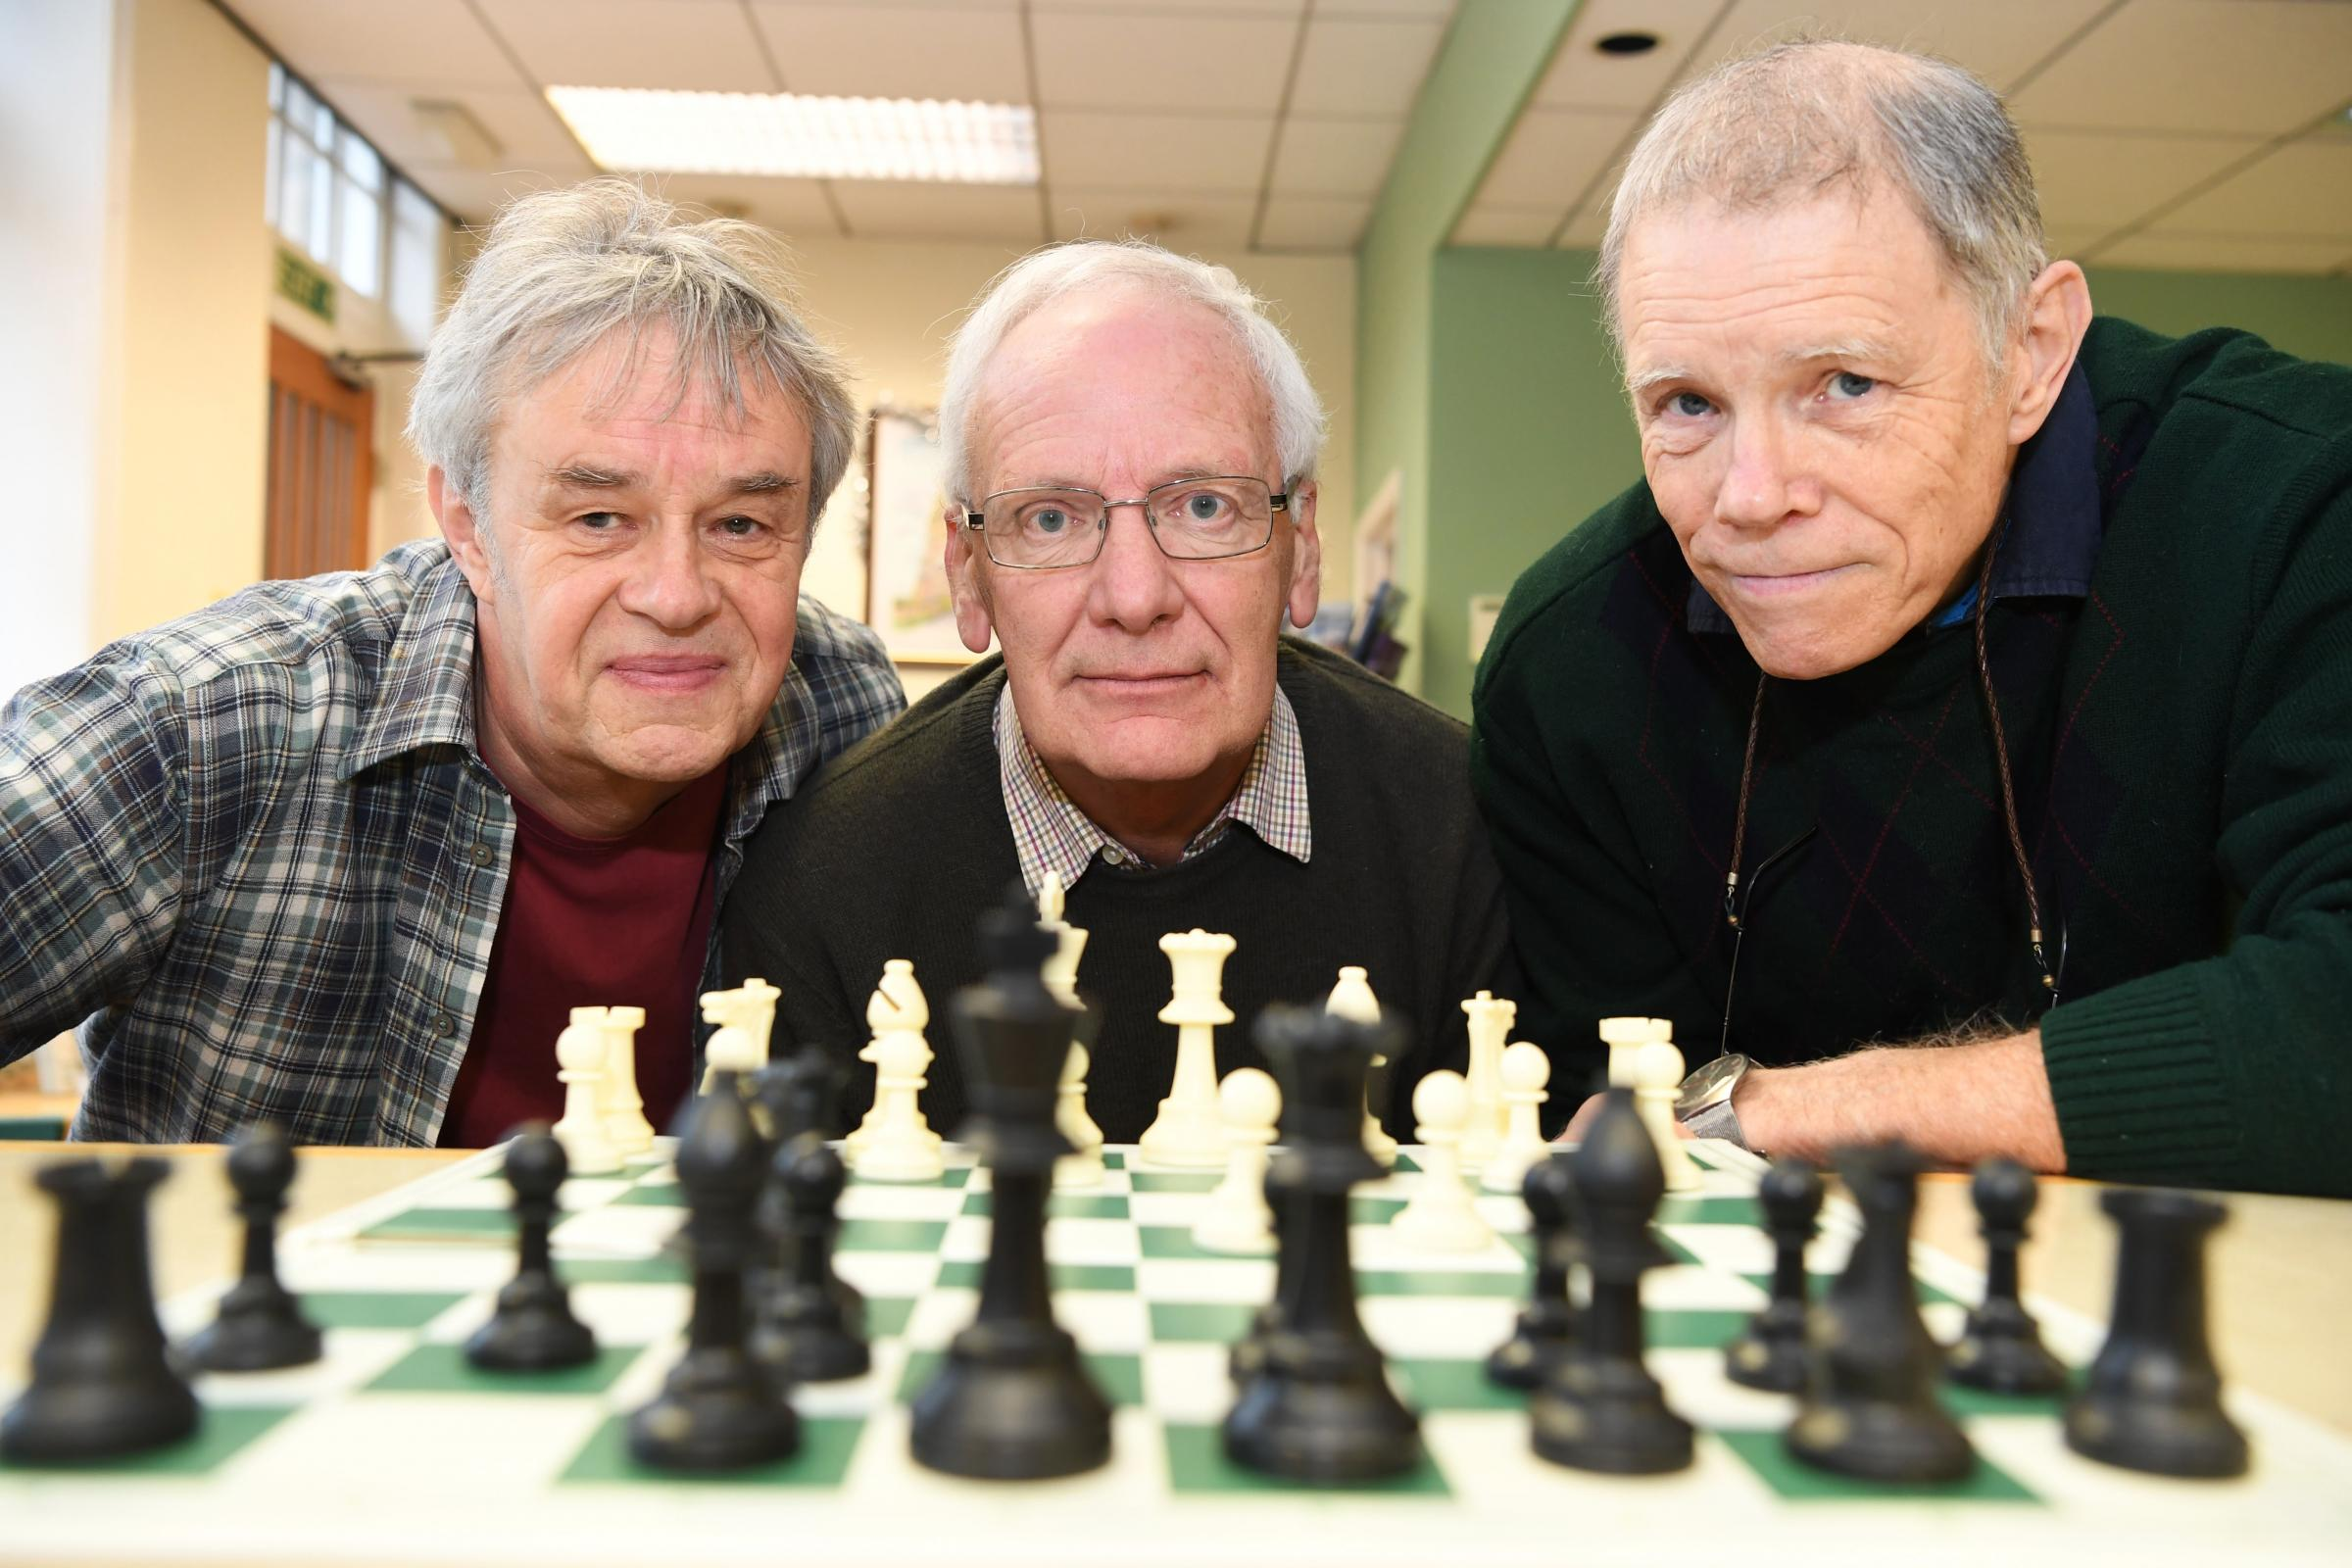 Tynedale chess players Tim Wrigley, Peter Crichton and Dave Humphreys.